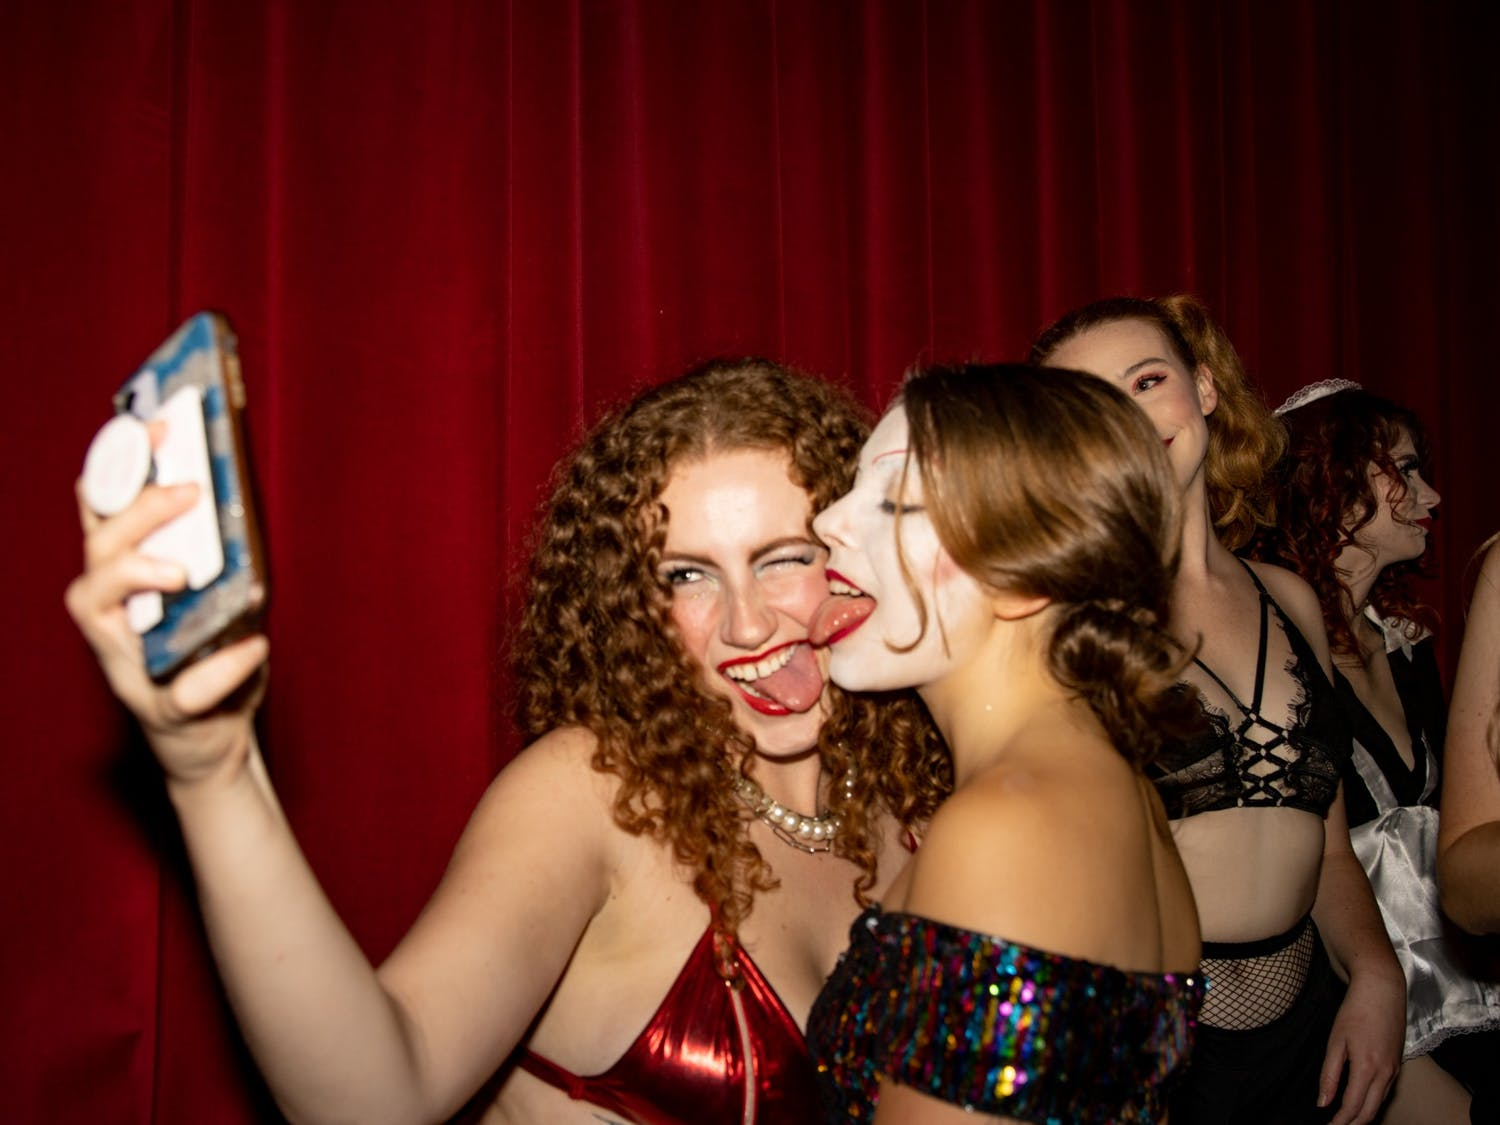 UNC senior Olivia Sullivan and junior Angelina Katsanis take a selfie portraying Dr. Frank-N-Furter and Columbia, respectively, before a technical rehearsal of the Rocky Horror Picture Show on Oct. 26 at the Varsity Theatre. The production is an annual tradition of the UNC Pauper Players.